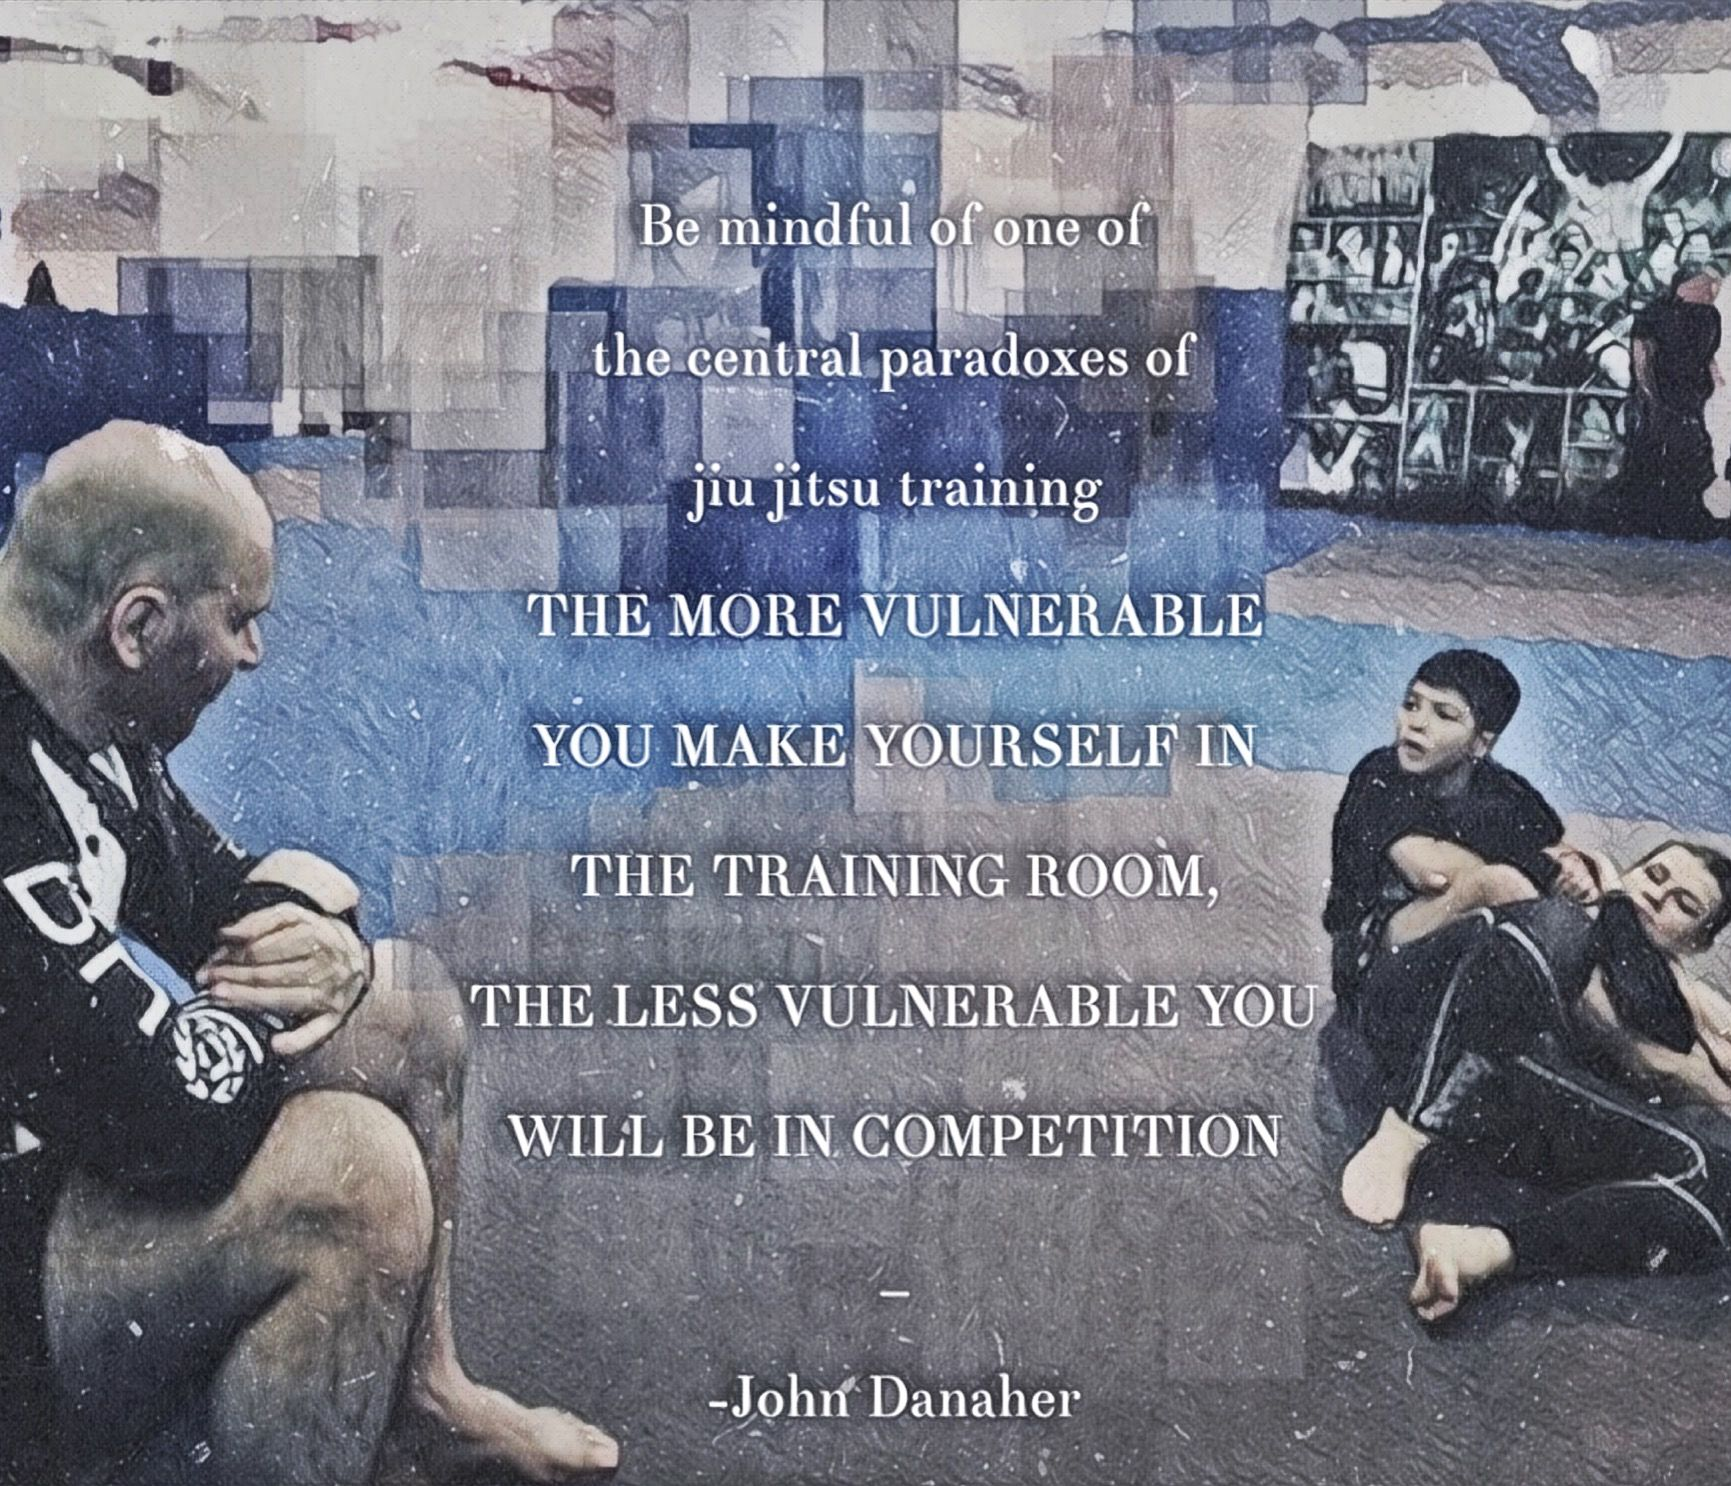 Bjj Pirates Danaher